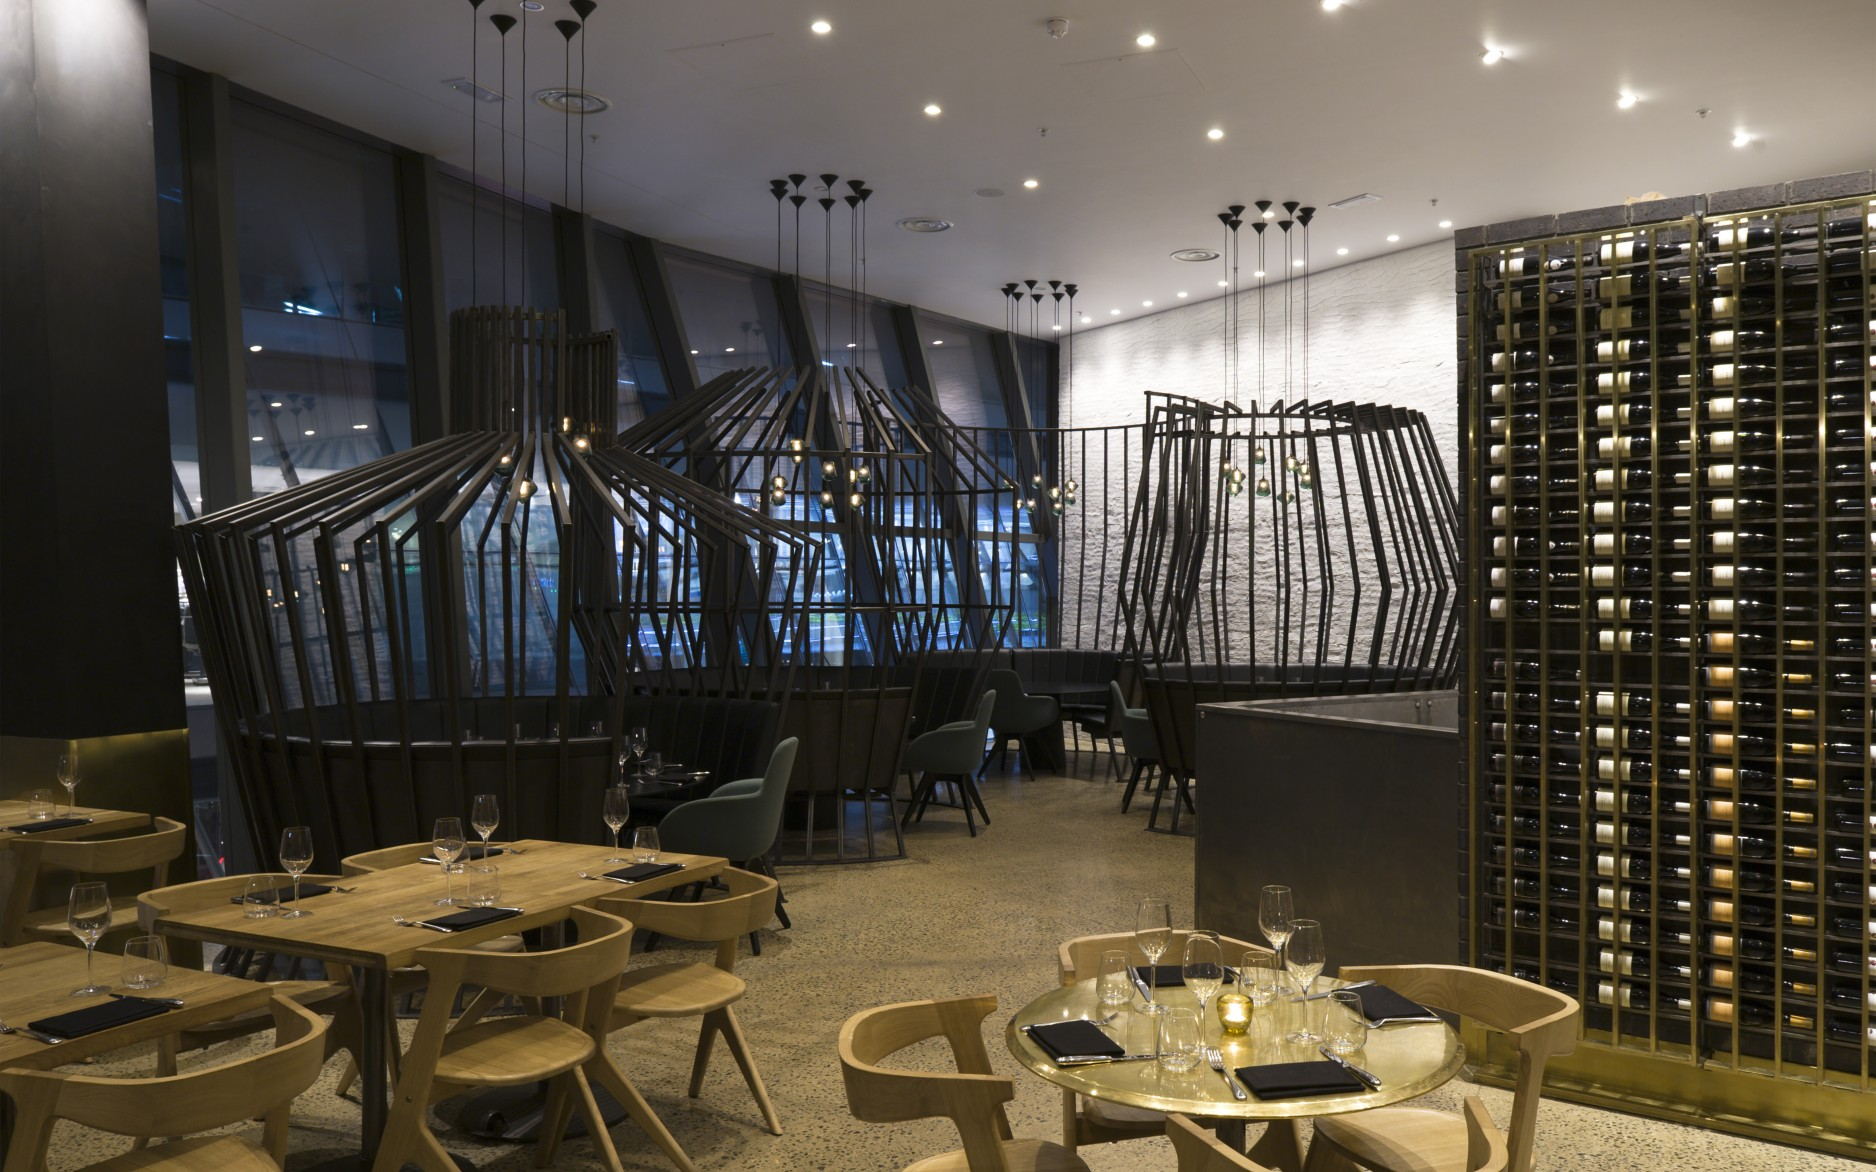 The design – still going strong five years on – allowed Barbecoa to meet energy load limits and offer diners a warm, inviting atmosphere.